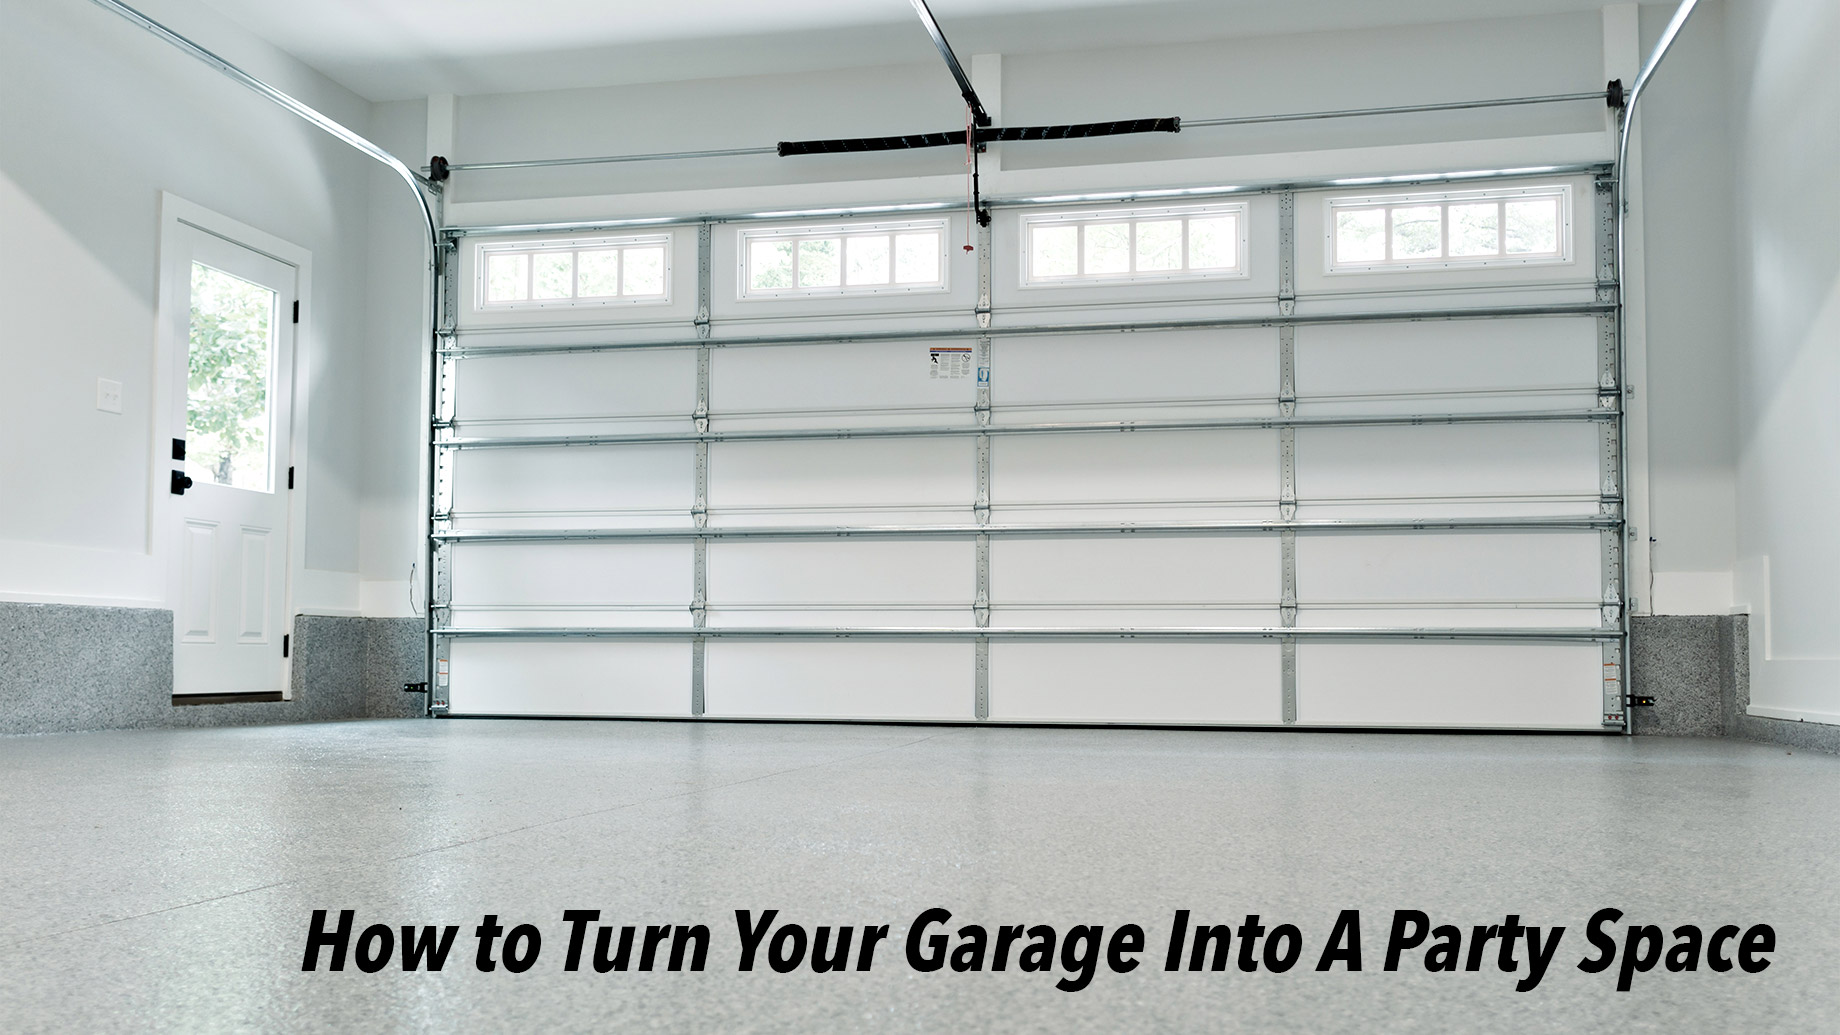 How to Turn Your Garage Into A Party Space